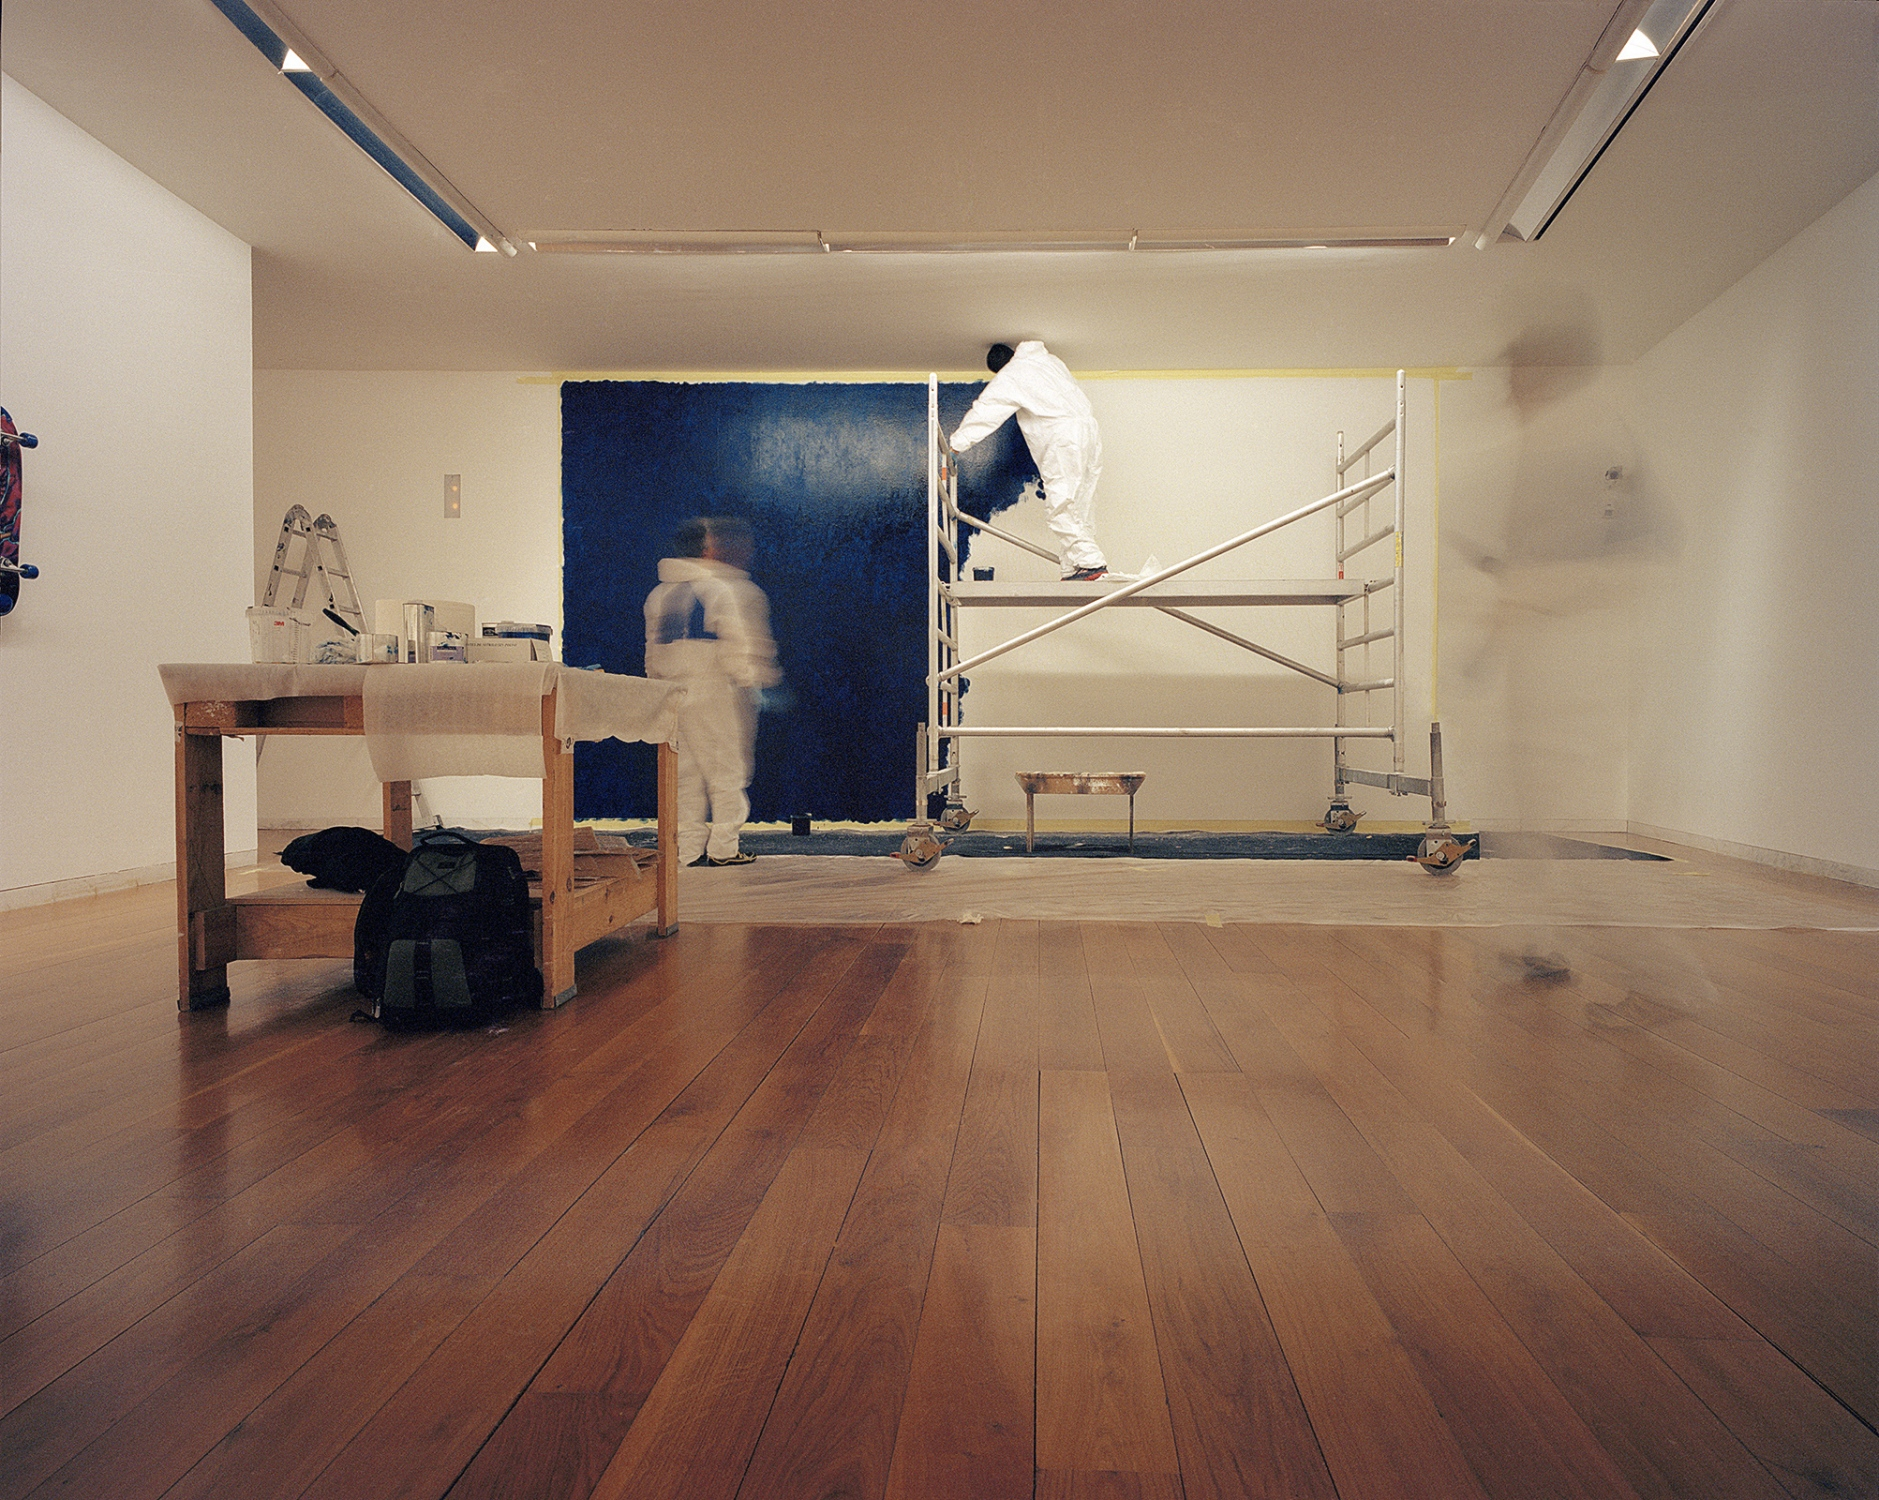 Graham Gussin working in CGAC, Centro Galego de Arte Contemporânea, Santiago de Compostela, Spain. 2014. The artist was invited by Miguel von Hafe Pérez , the former director and curator, to present a paint on a wall of the museum for the  Exposition 93 . This image was made with color film with a Mamyia 7II camera, in 6x7 format. It was scanned by the artist with Hasselblad flextight X1 professional scanner.  This has a edition of 6 + 3 PA  in the size 75x94 cm. It is printed by the artists in archival quality.